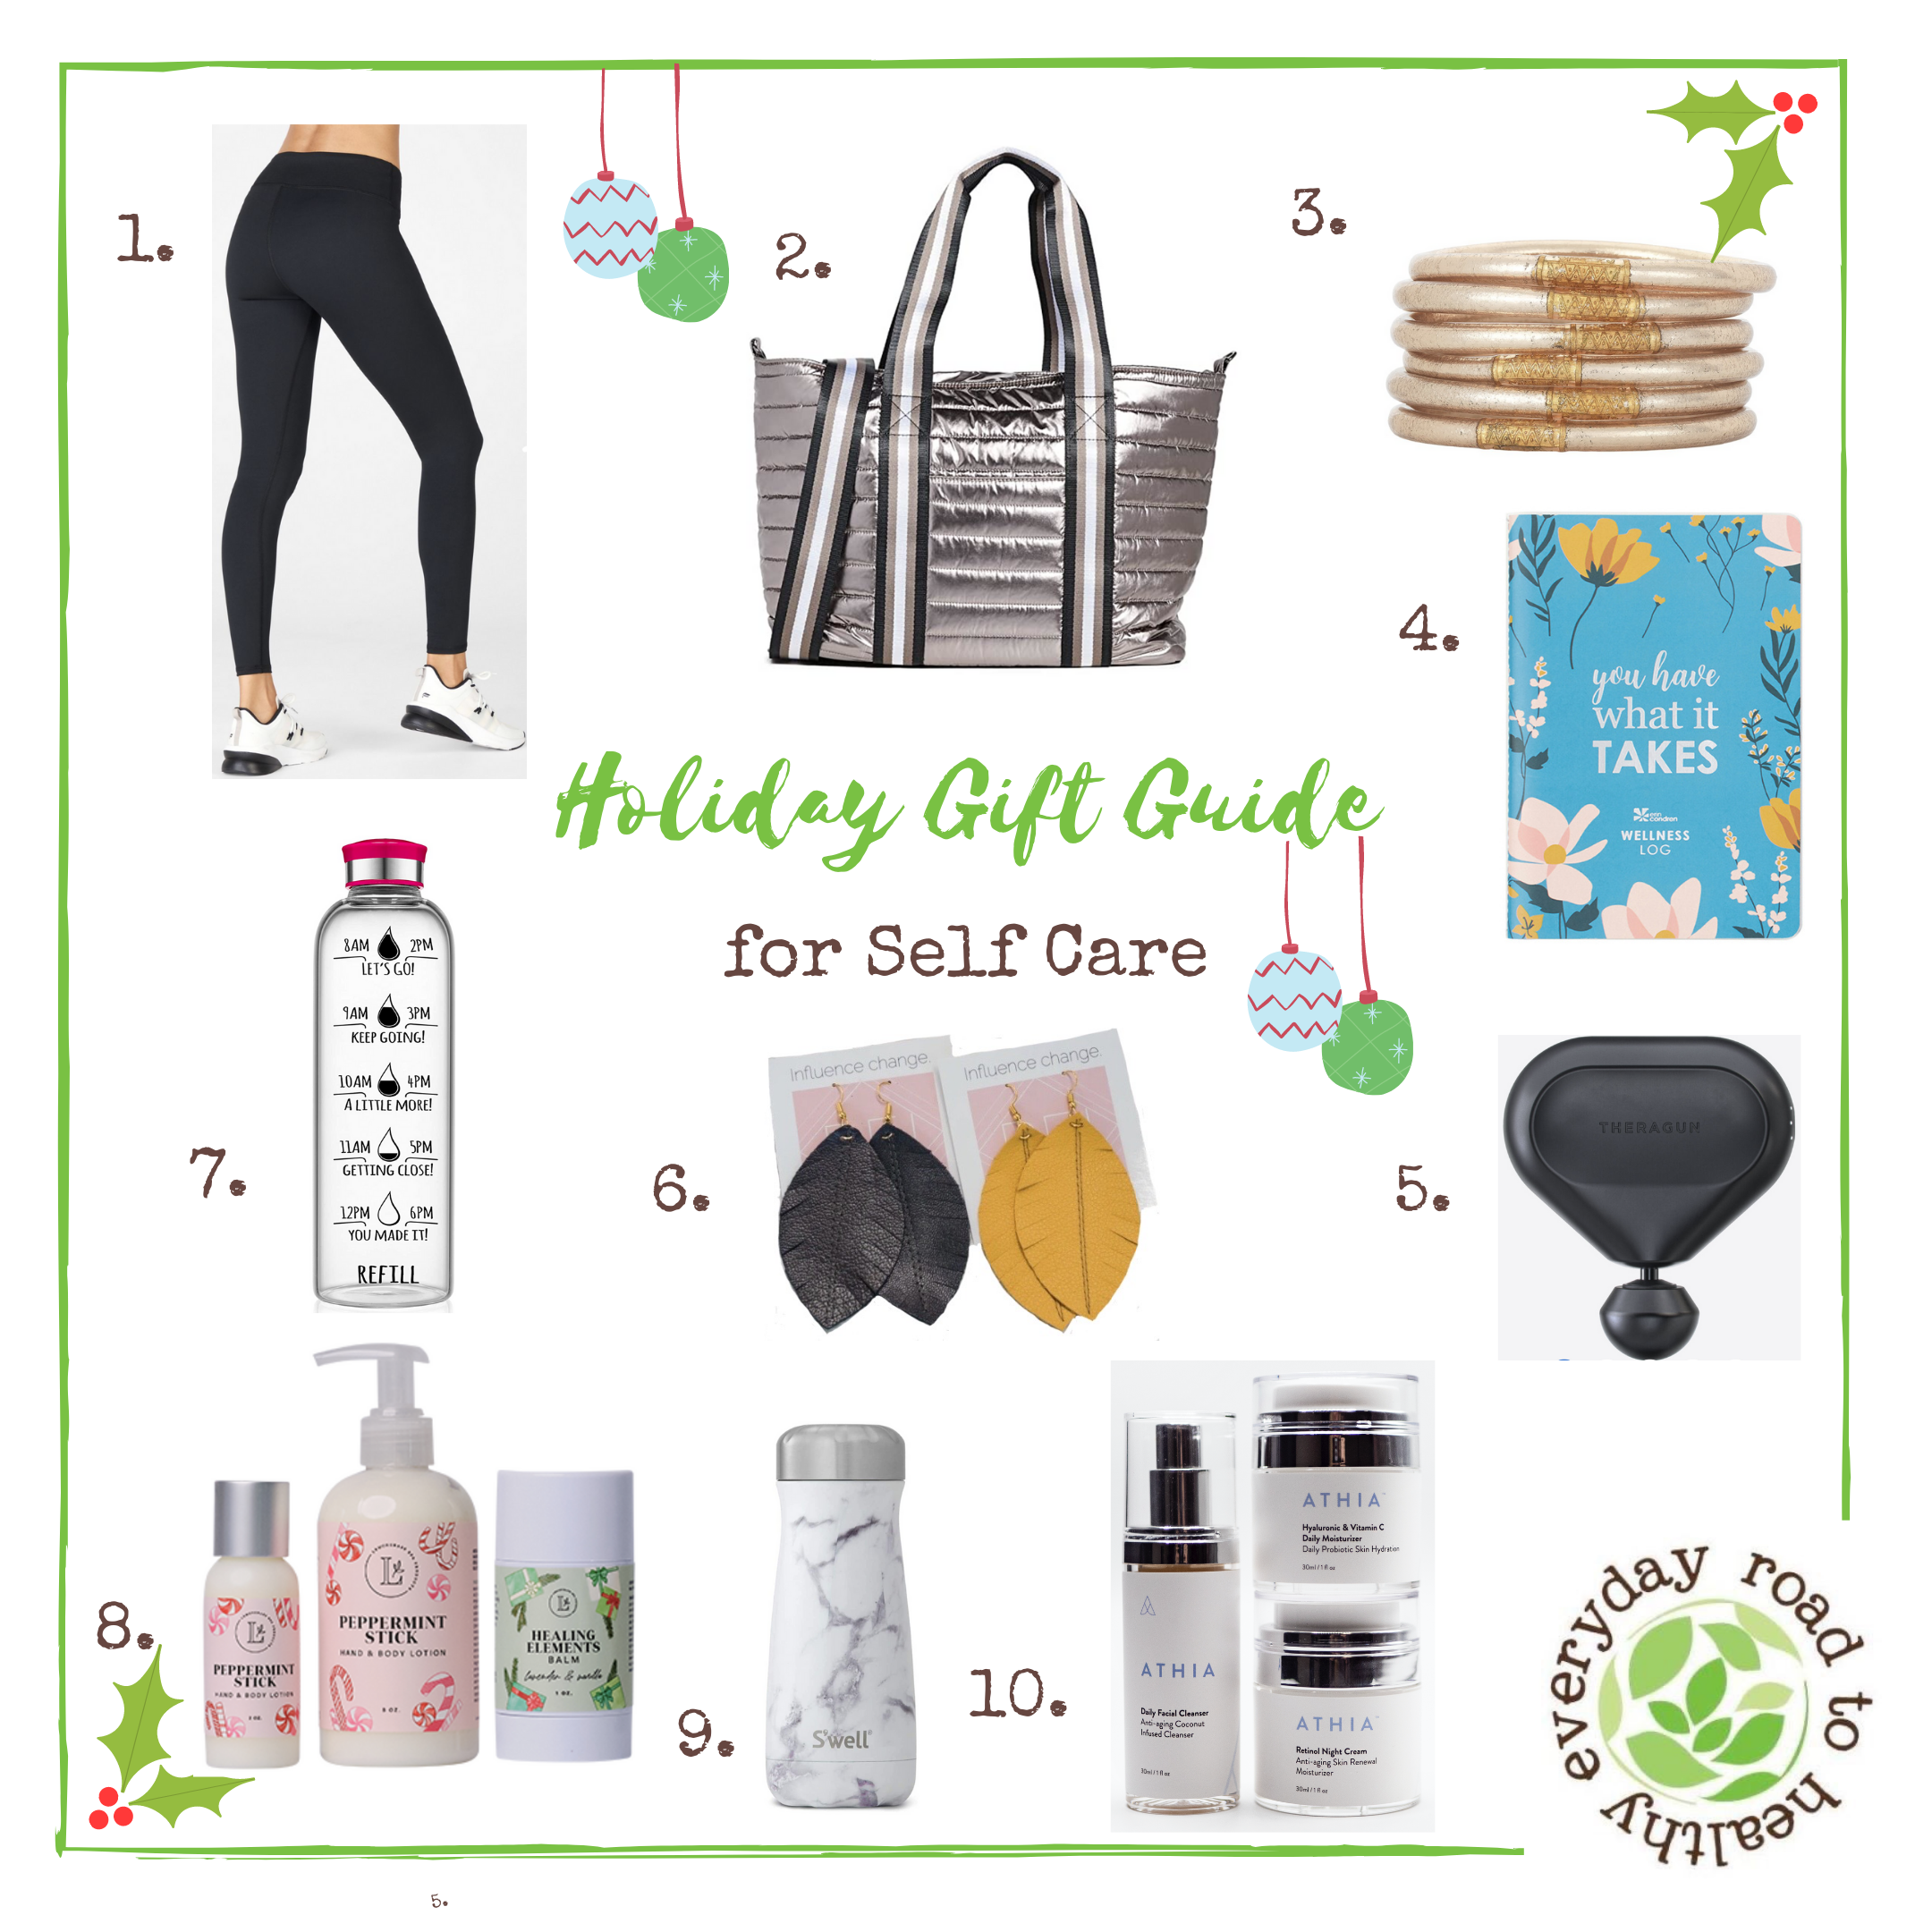 10 must images of Holiday Self Care items on a gift guide